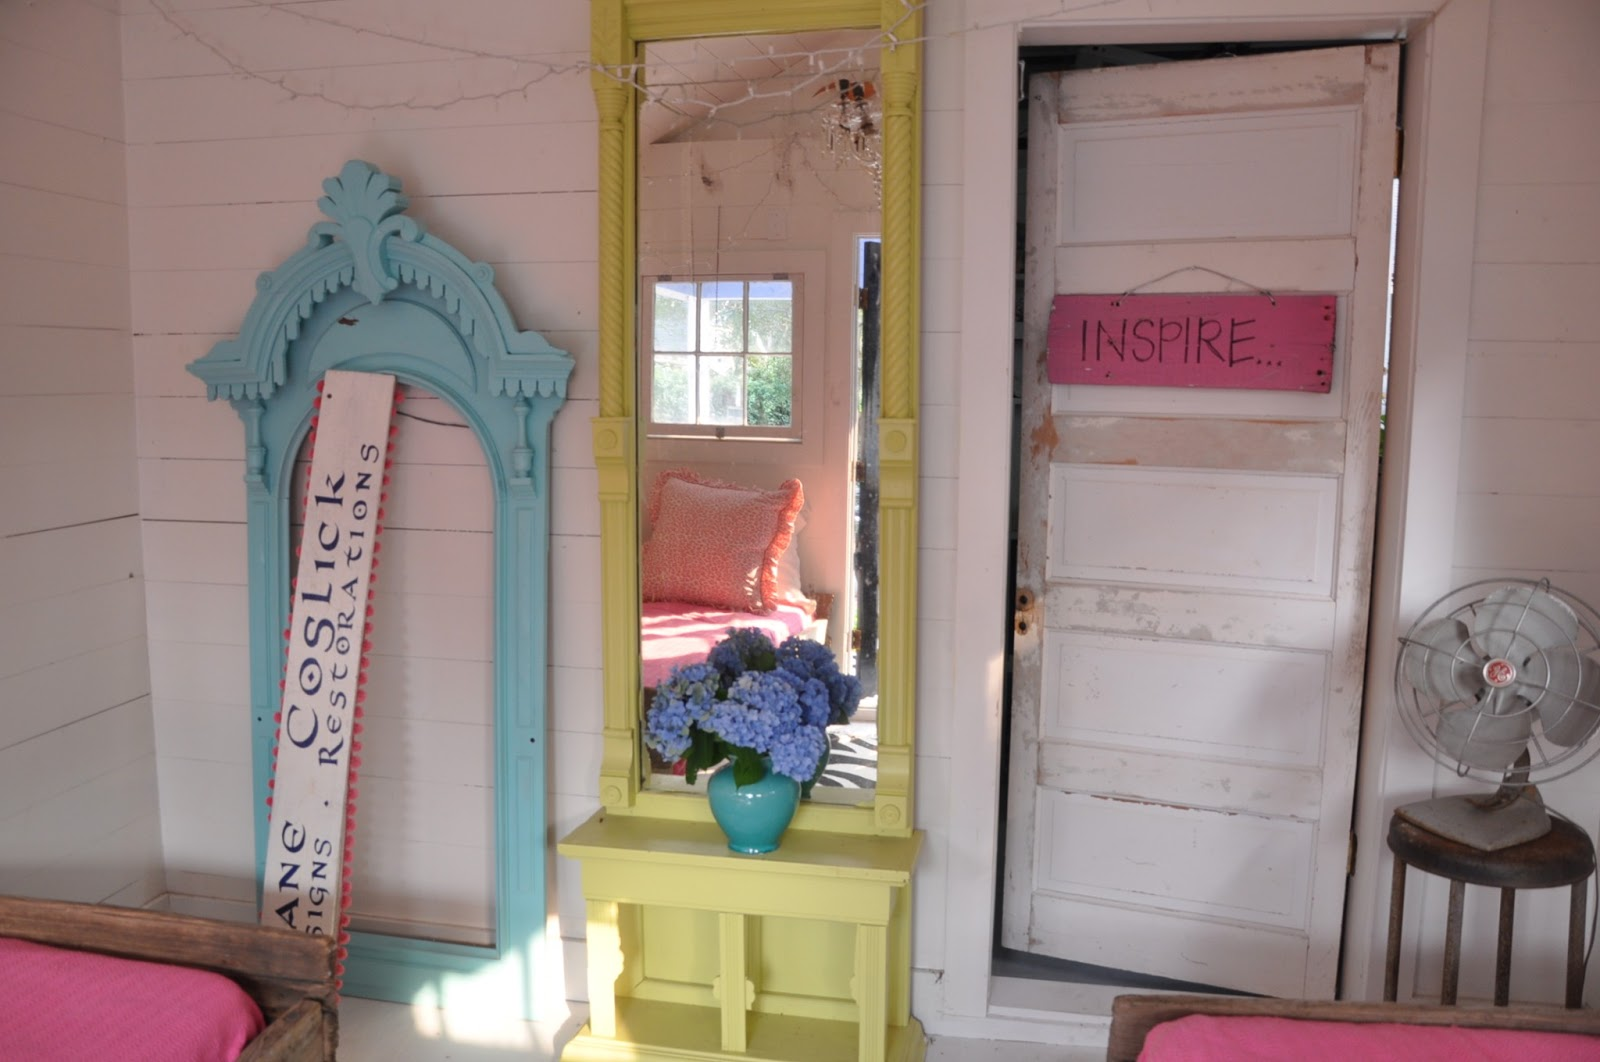 Jane coslick cottages a few favorite things and a few colors at work - The writers cottage inspiration by design ...